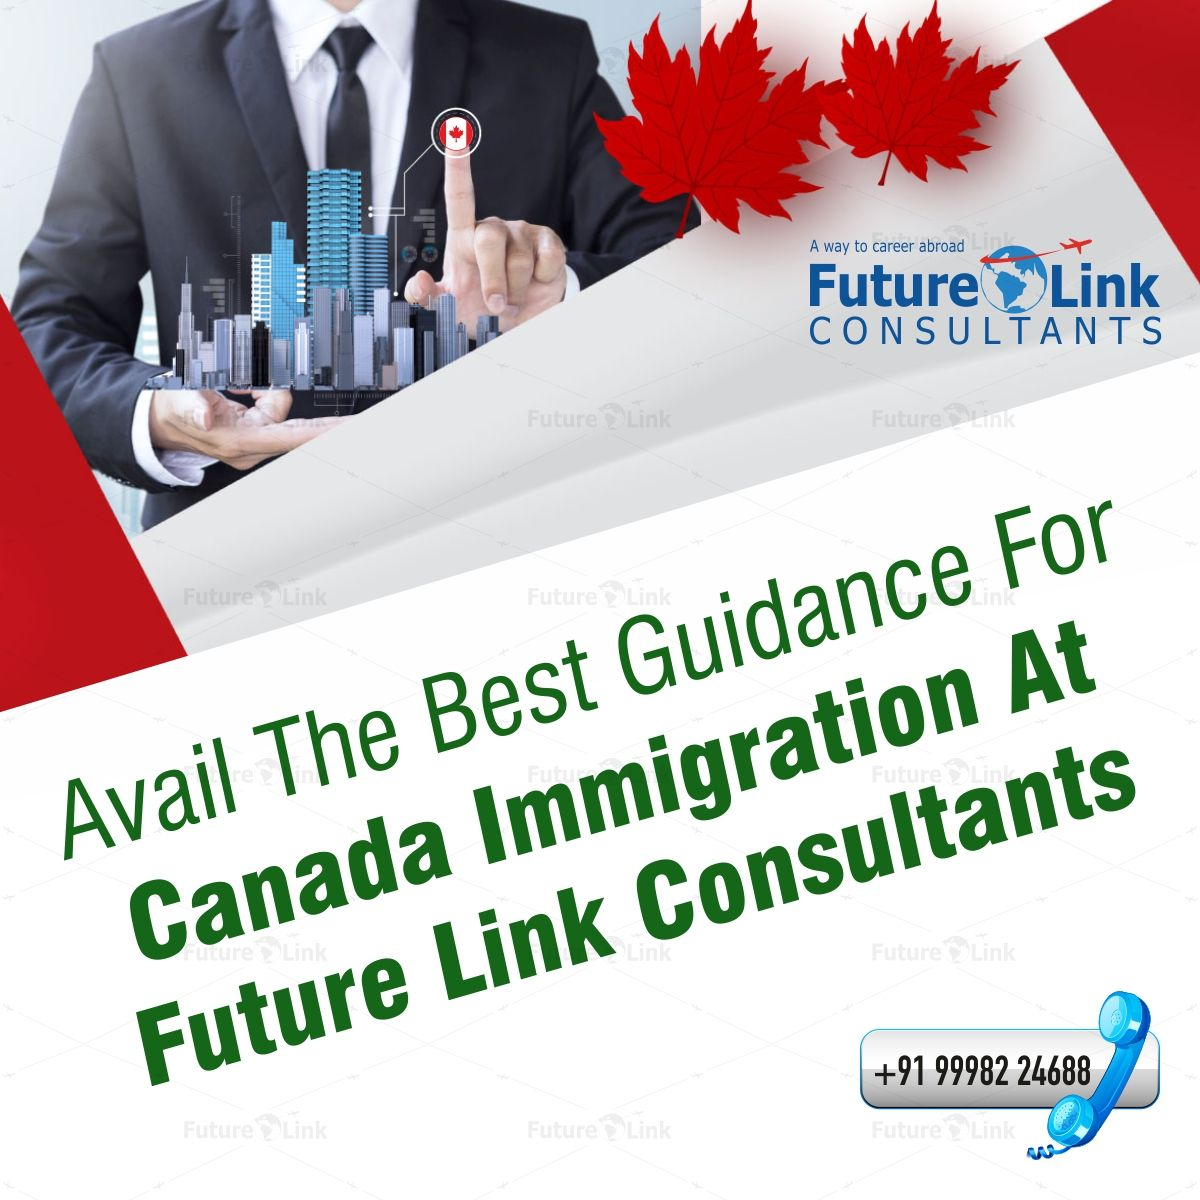 Settle in Canada Career abroad, Canada, Guidance